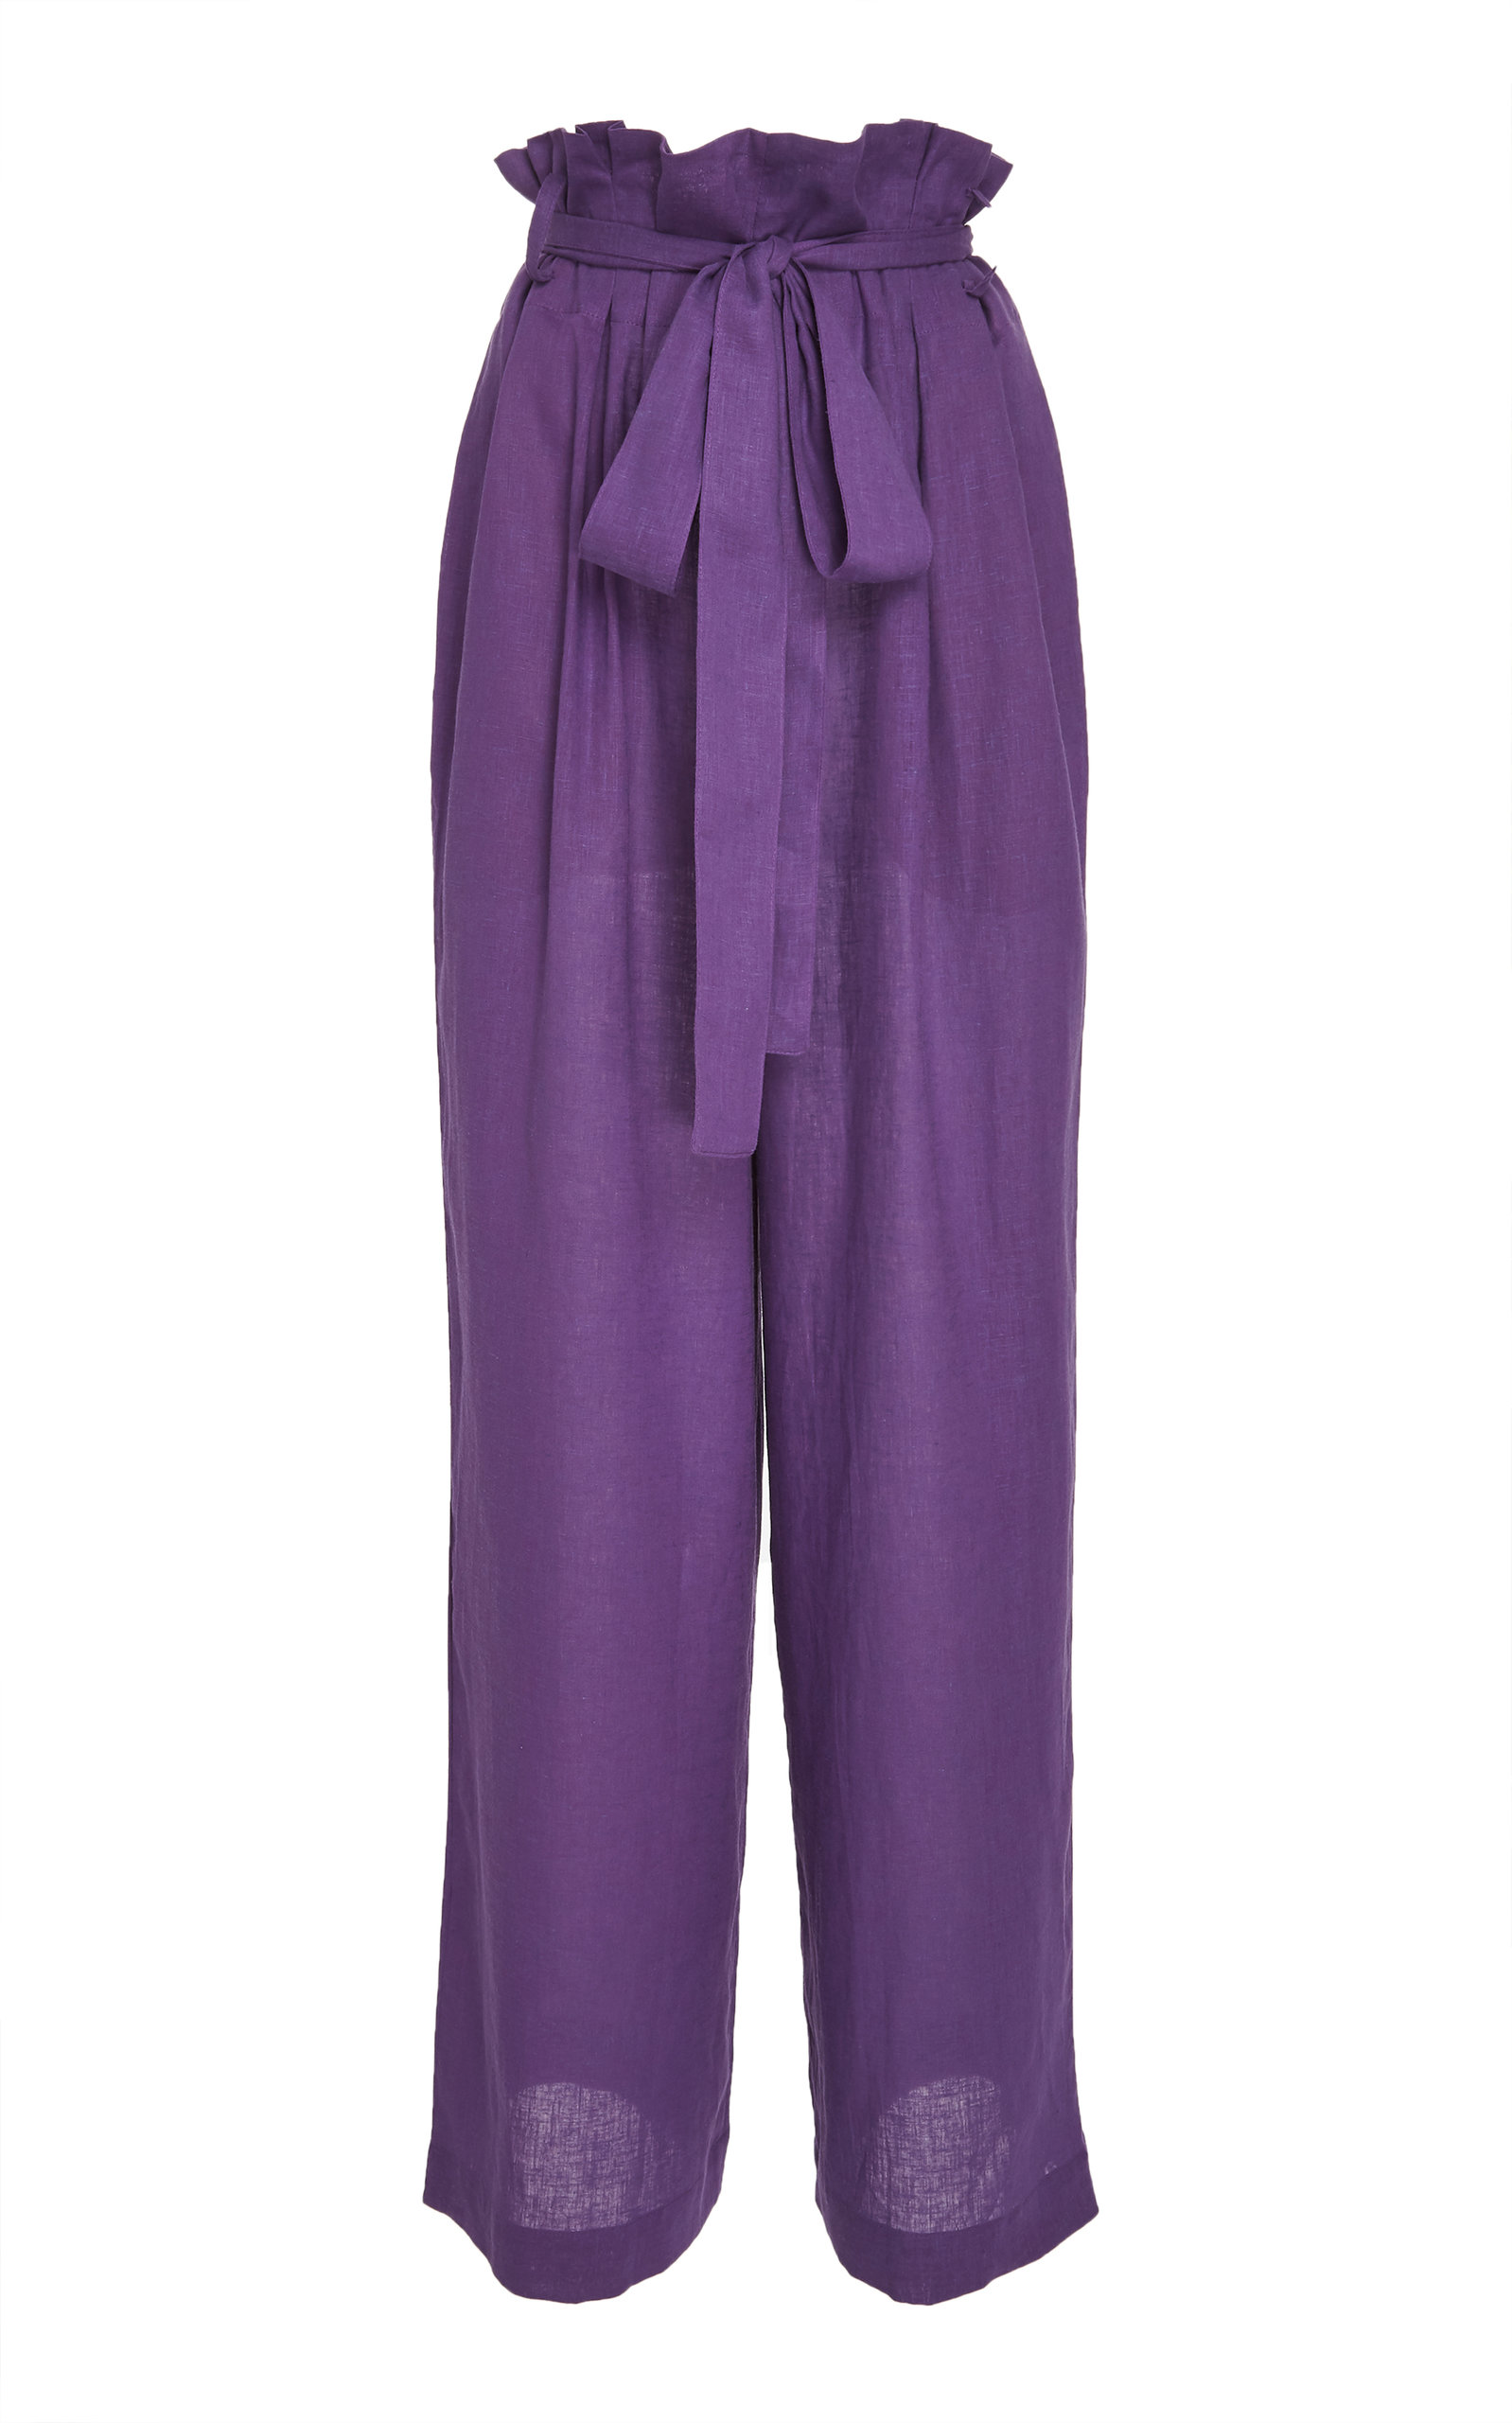 LENNY NIEMEYER Clochard High-Waisted Wide-Leg Linen Pants in Purple